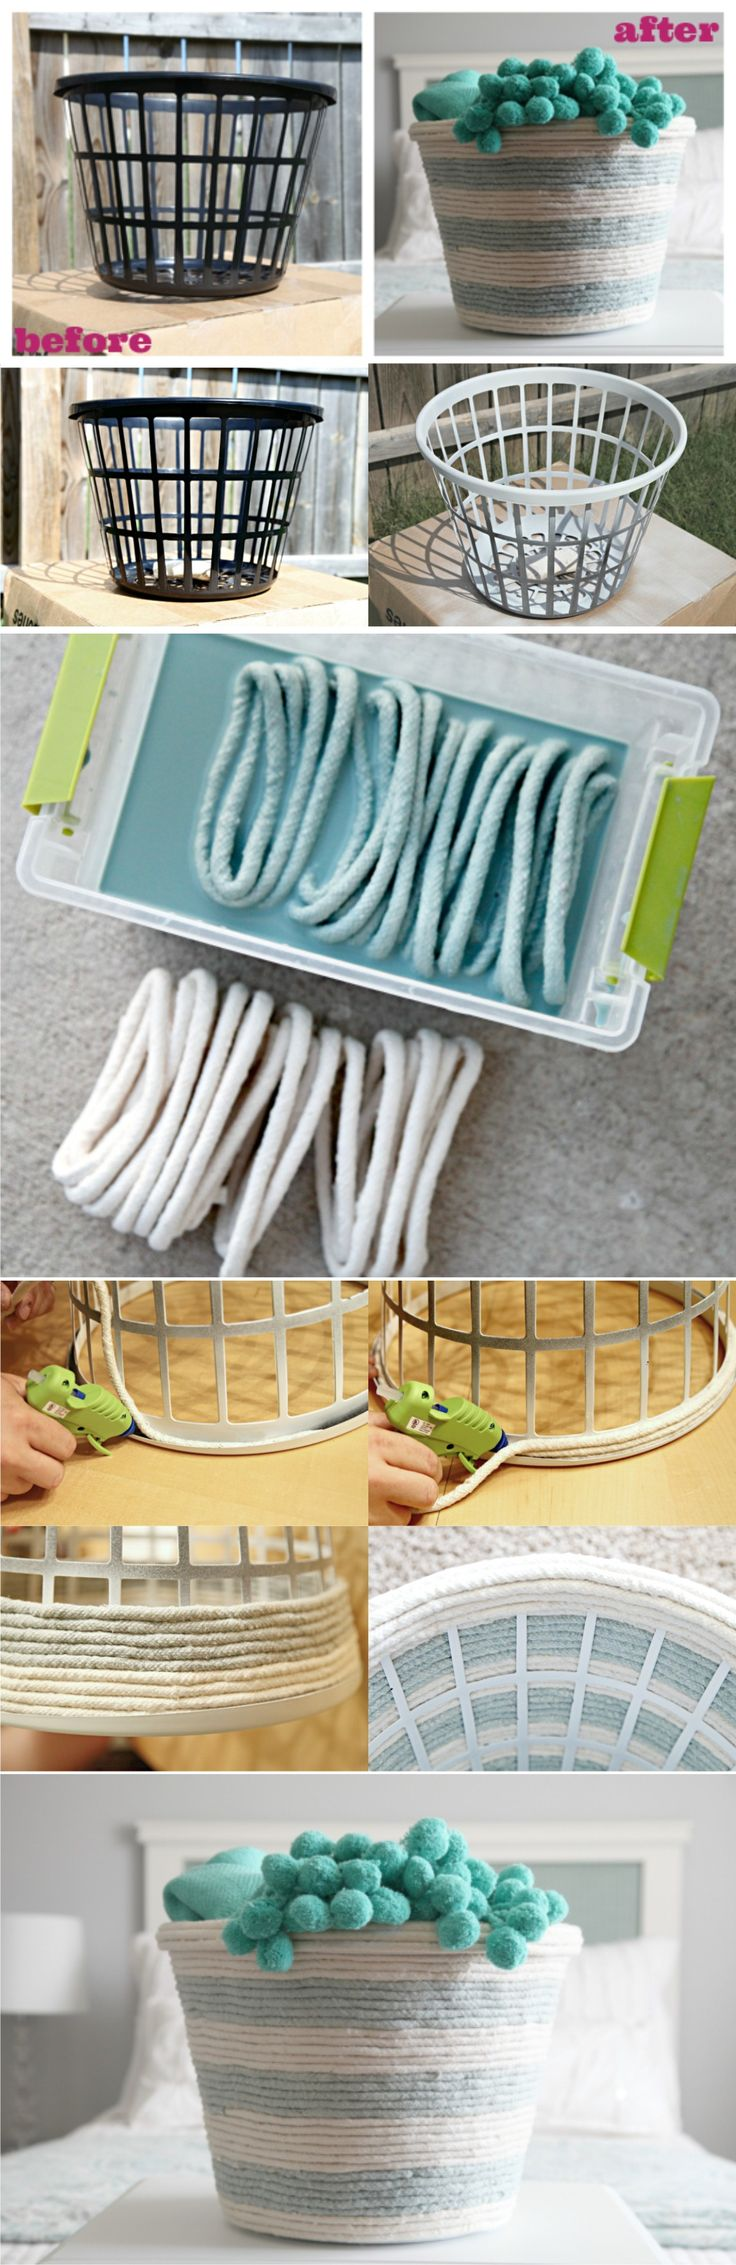 Dollar store laundry basket, hot glue gun, rope, Tah dah!! Tutorial